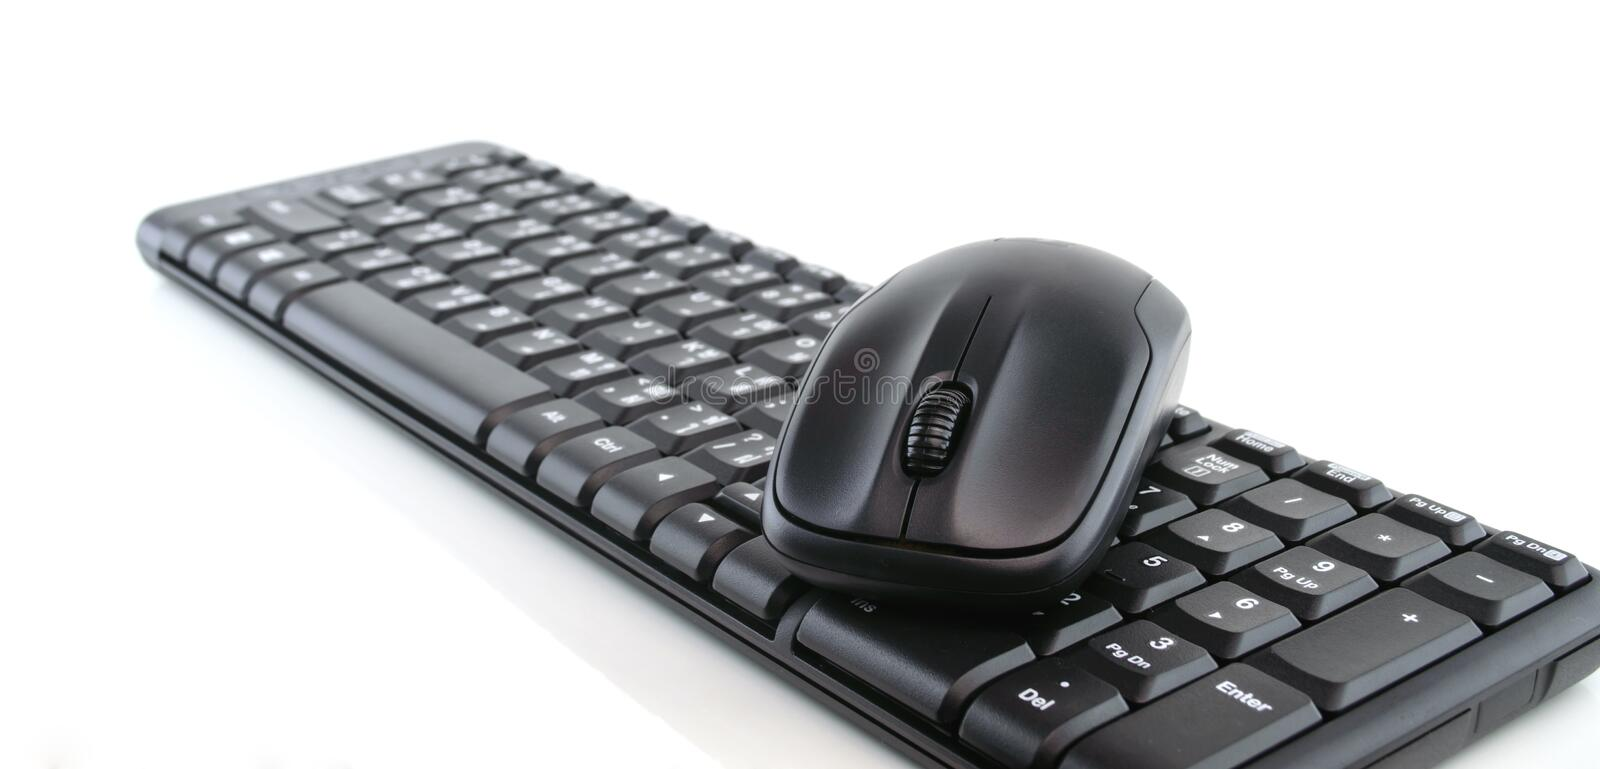 Computer keyboard and mouse isolated on white stock photos